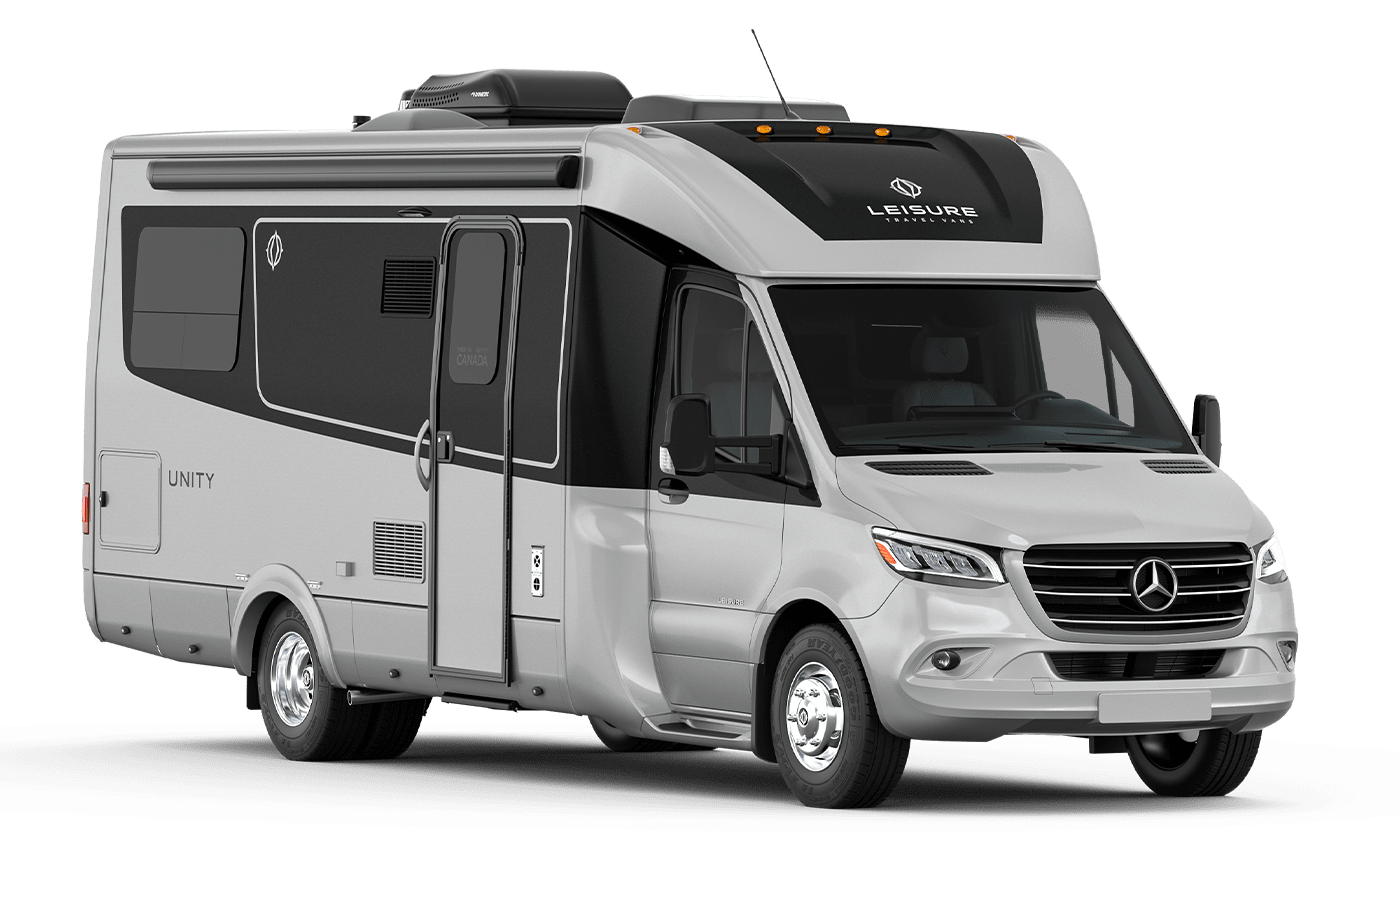 Mercedes recreational vehicles vehicle ideas for Mercedes benz recreational vehicles